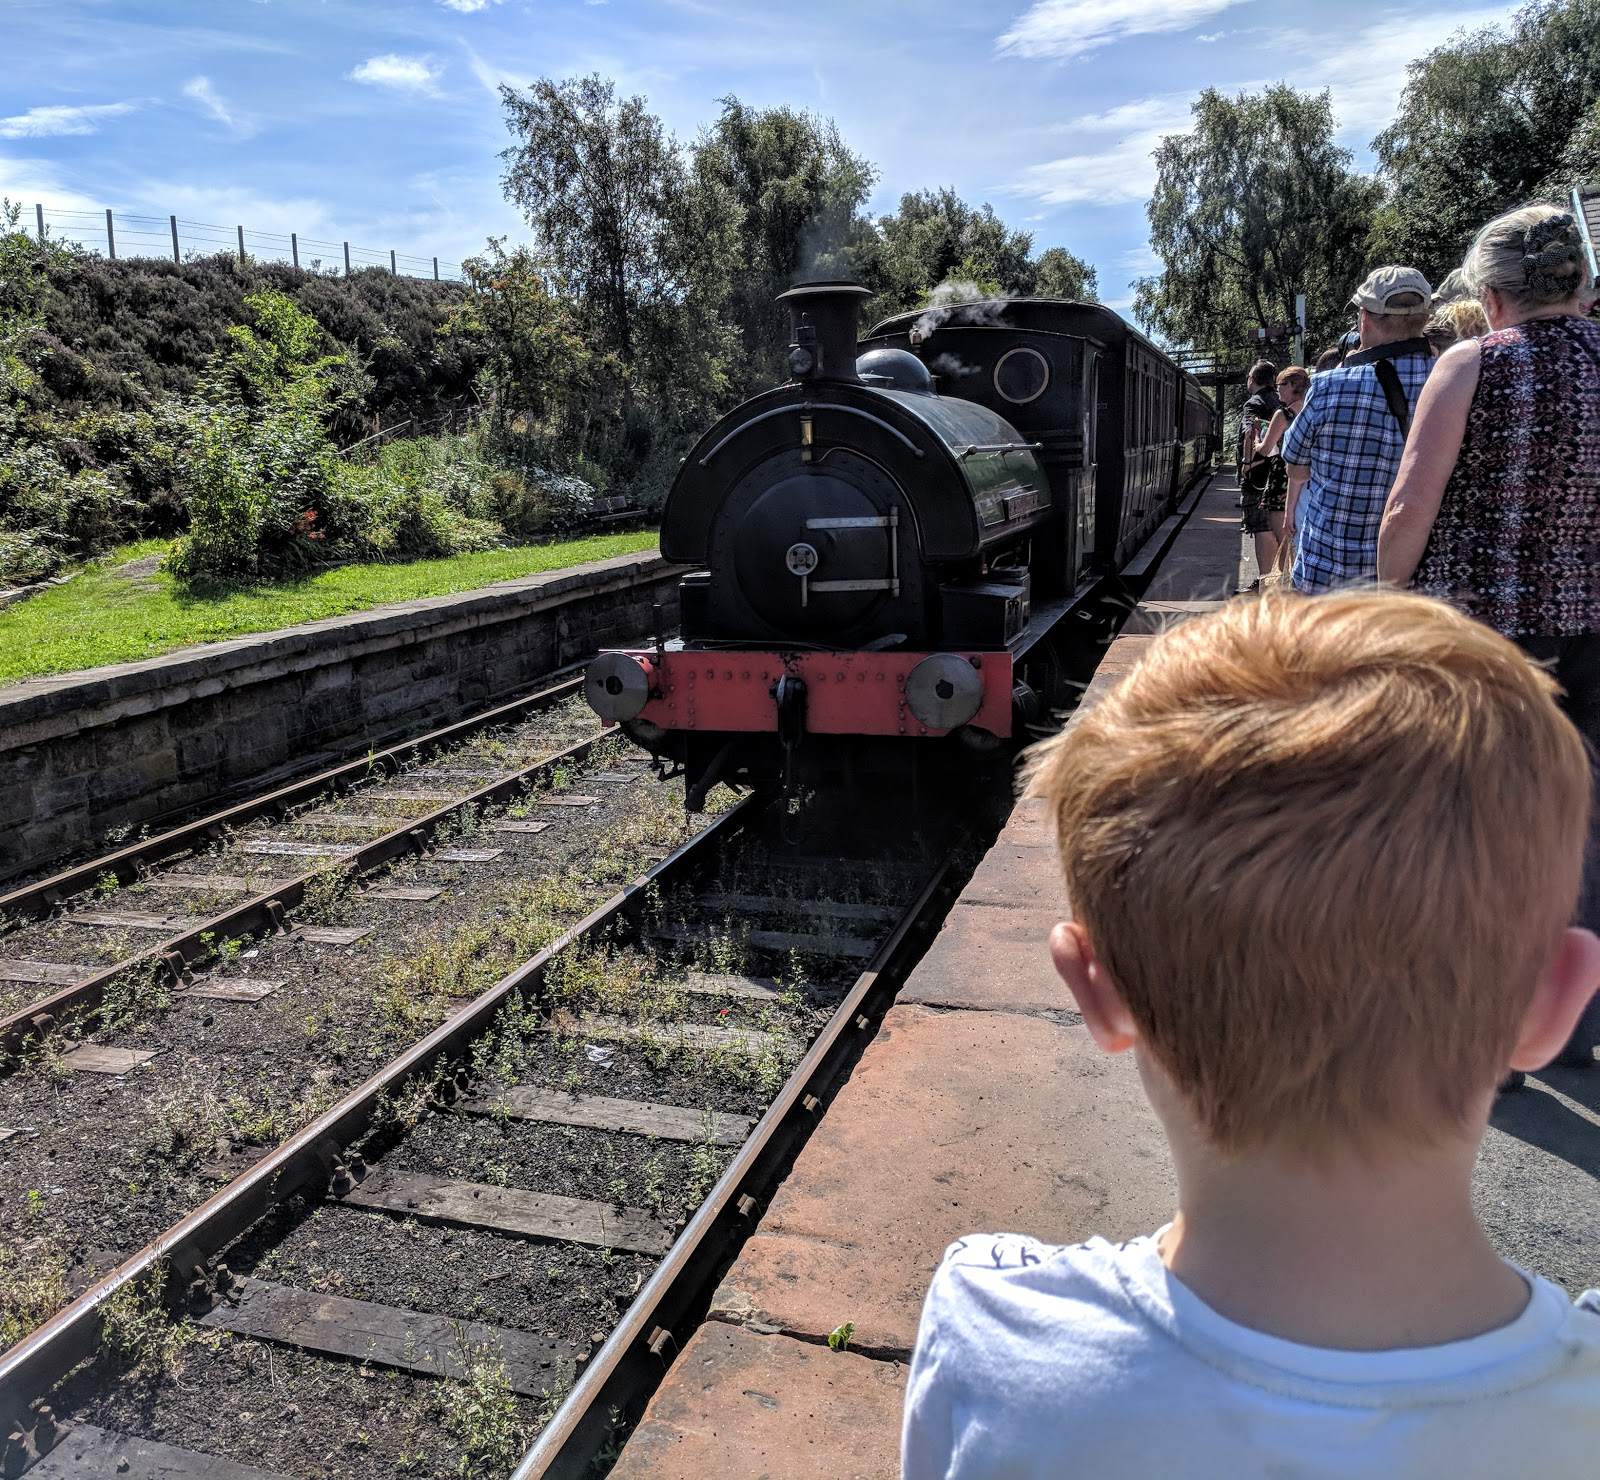 Tanfield Railway | Britain's Oldest Railway & a Picnic at Causey Arch